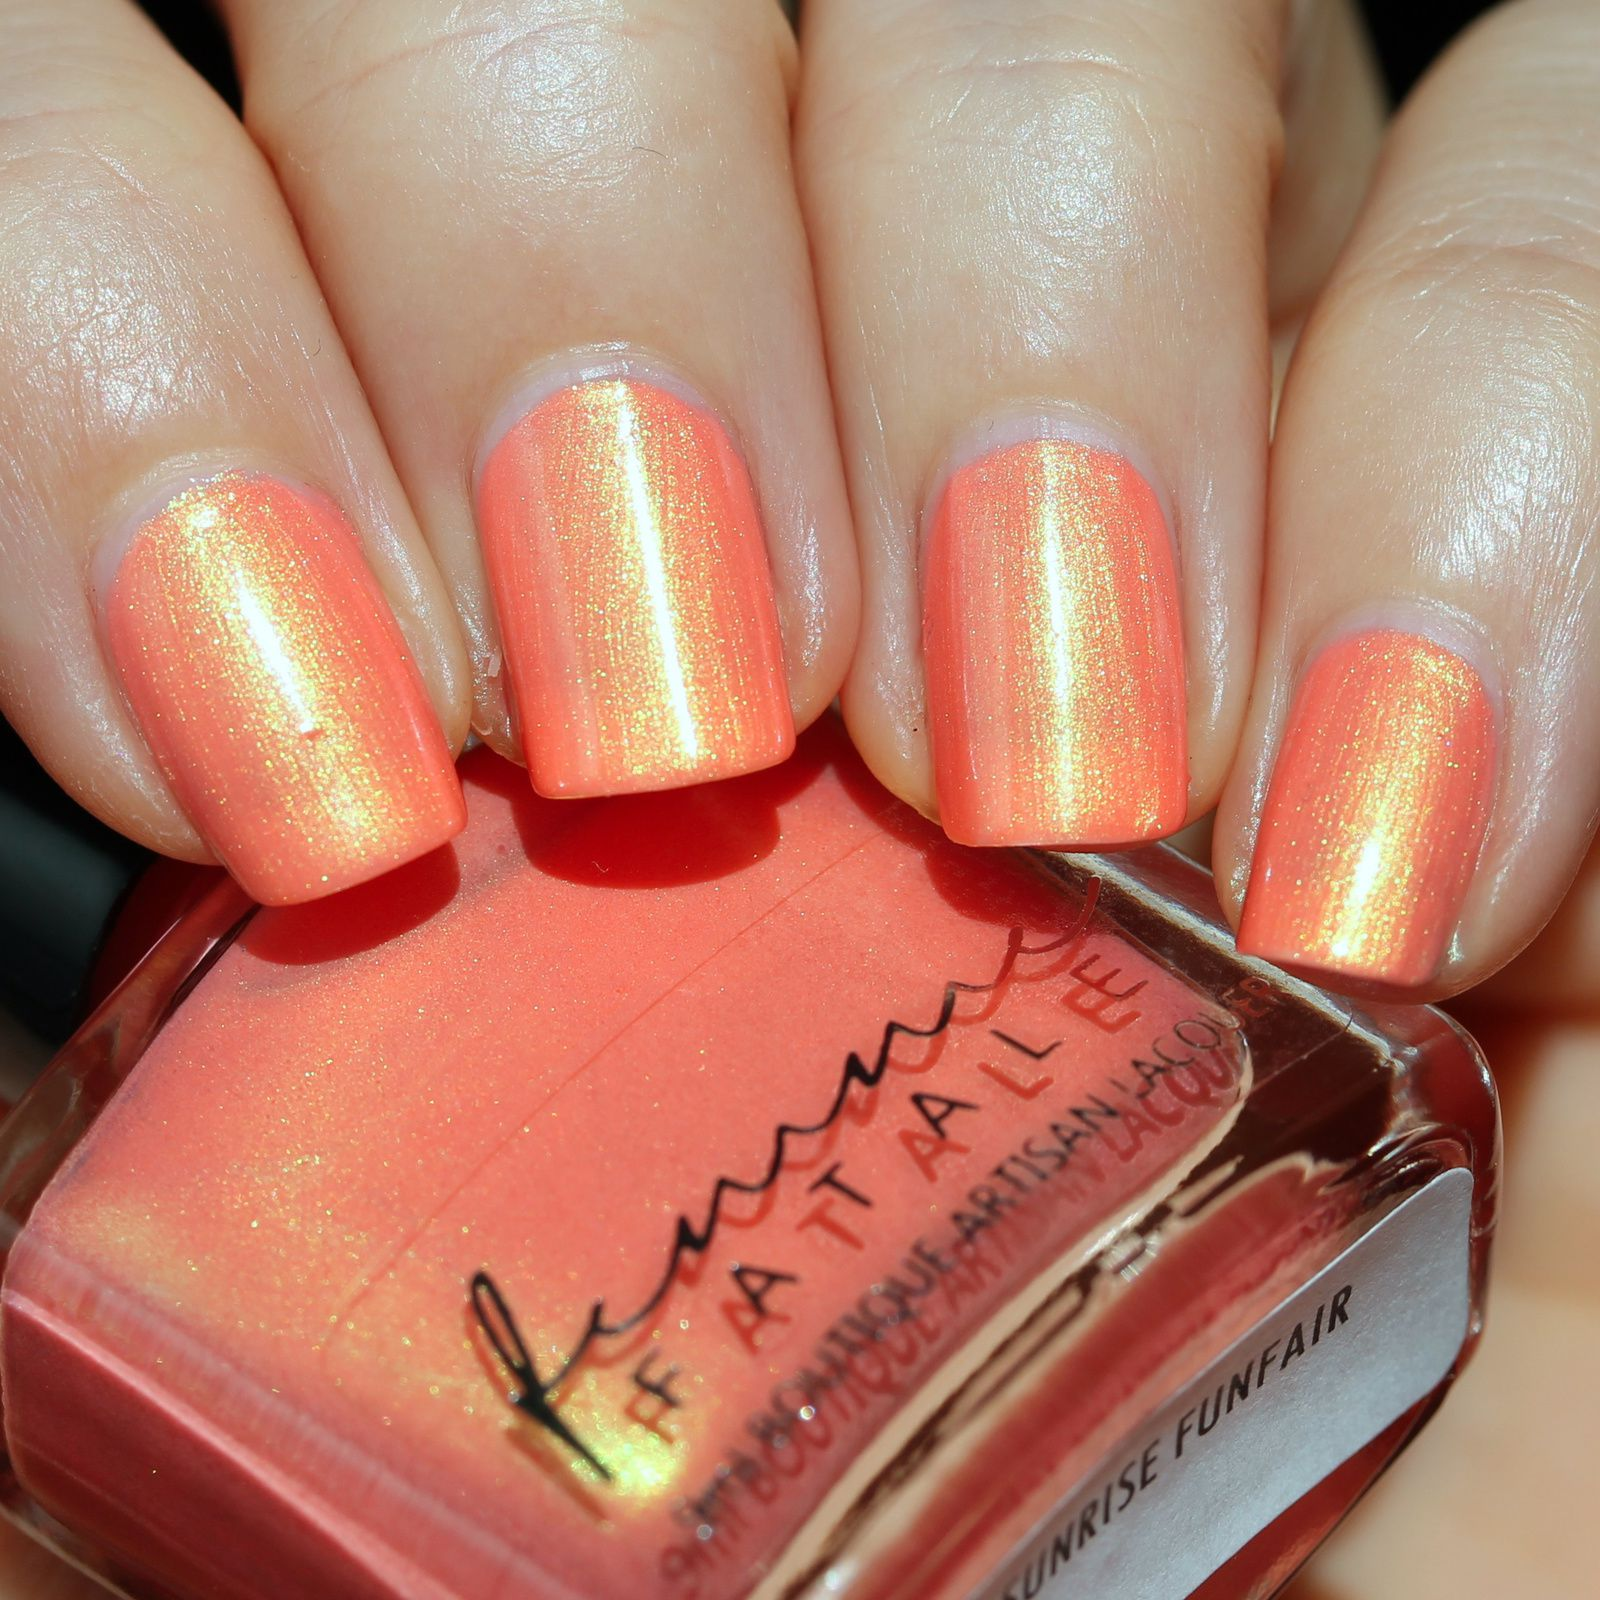 Femme Fatale Cosmetics - Sunrise Funfair (2 coats, no top coat)